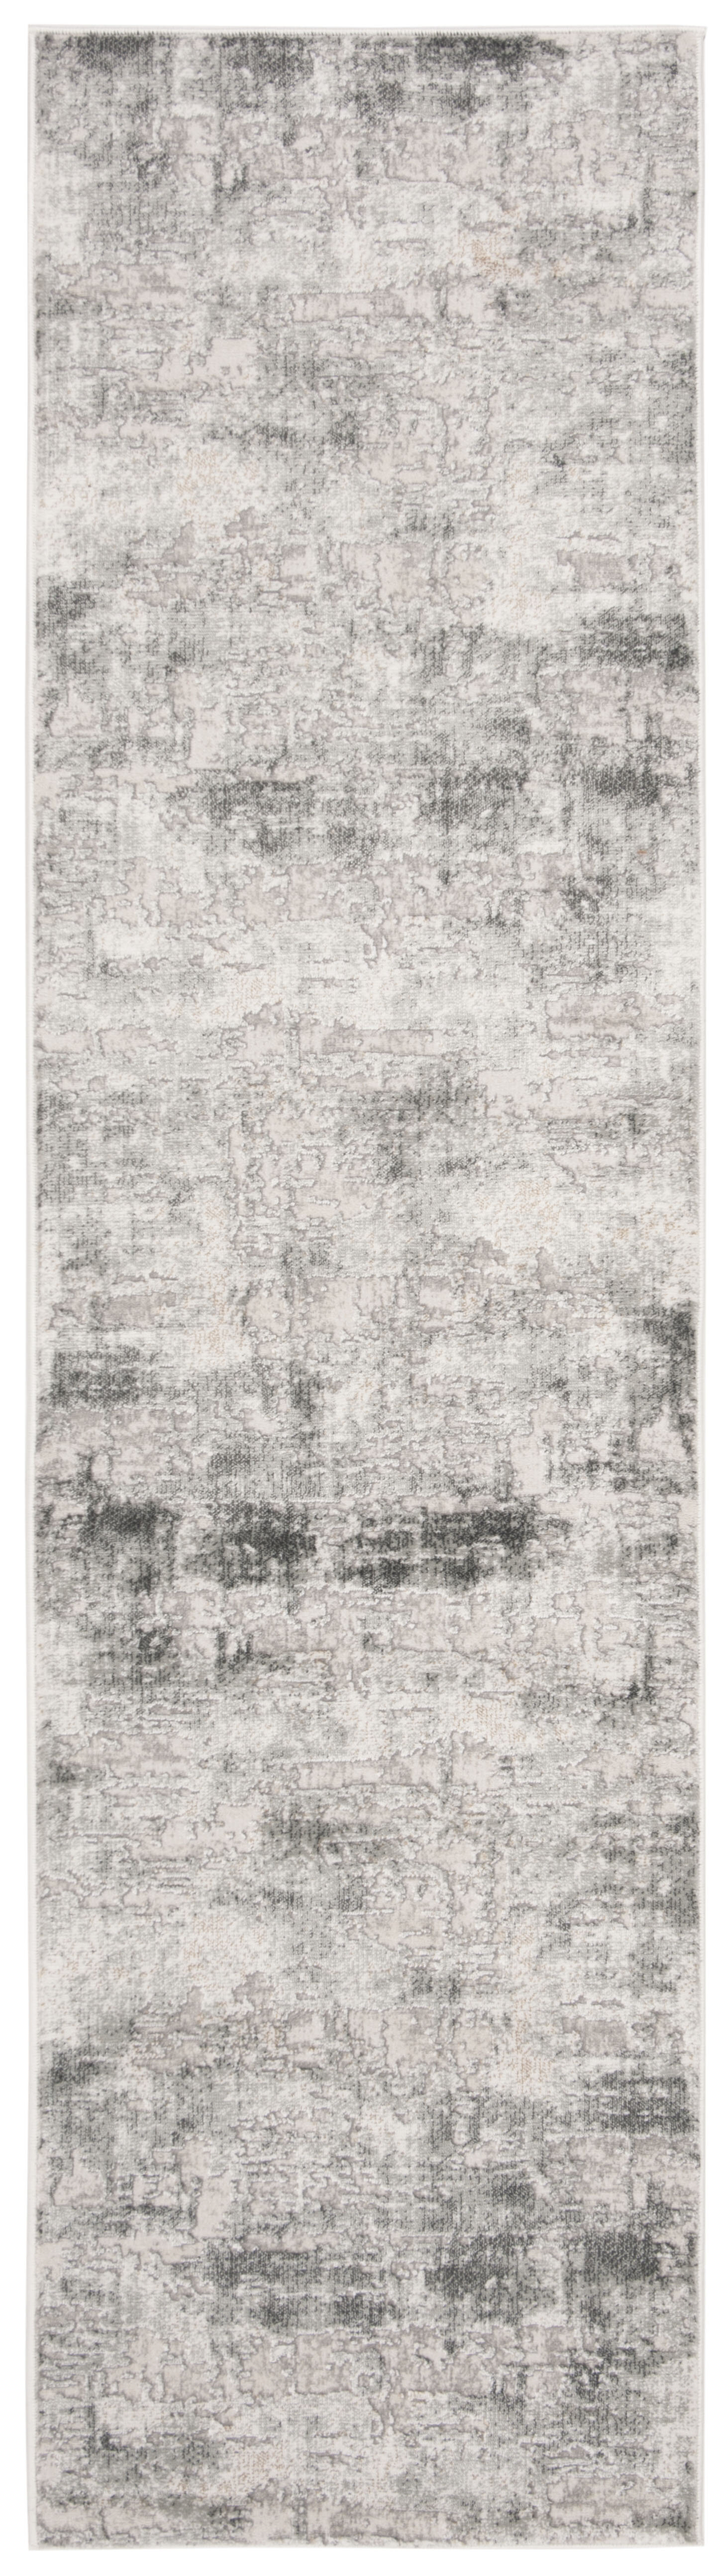 Discount Kass Beige Charcoal Area Rug Furniture Online